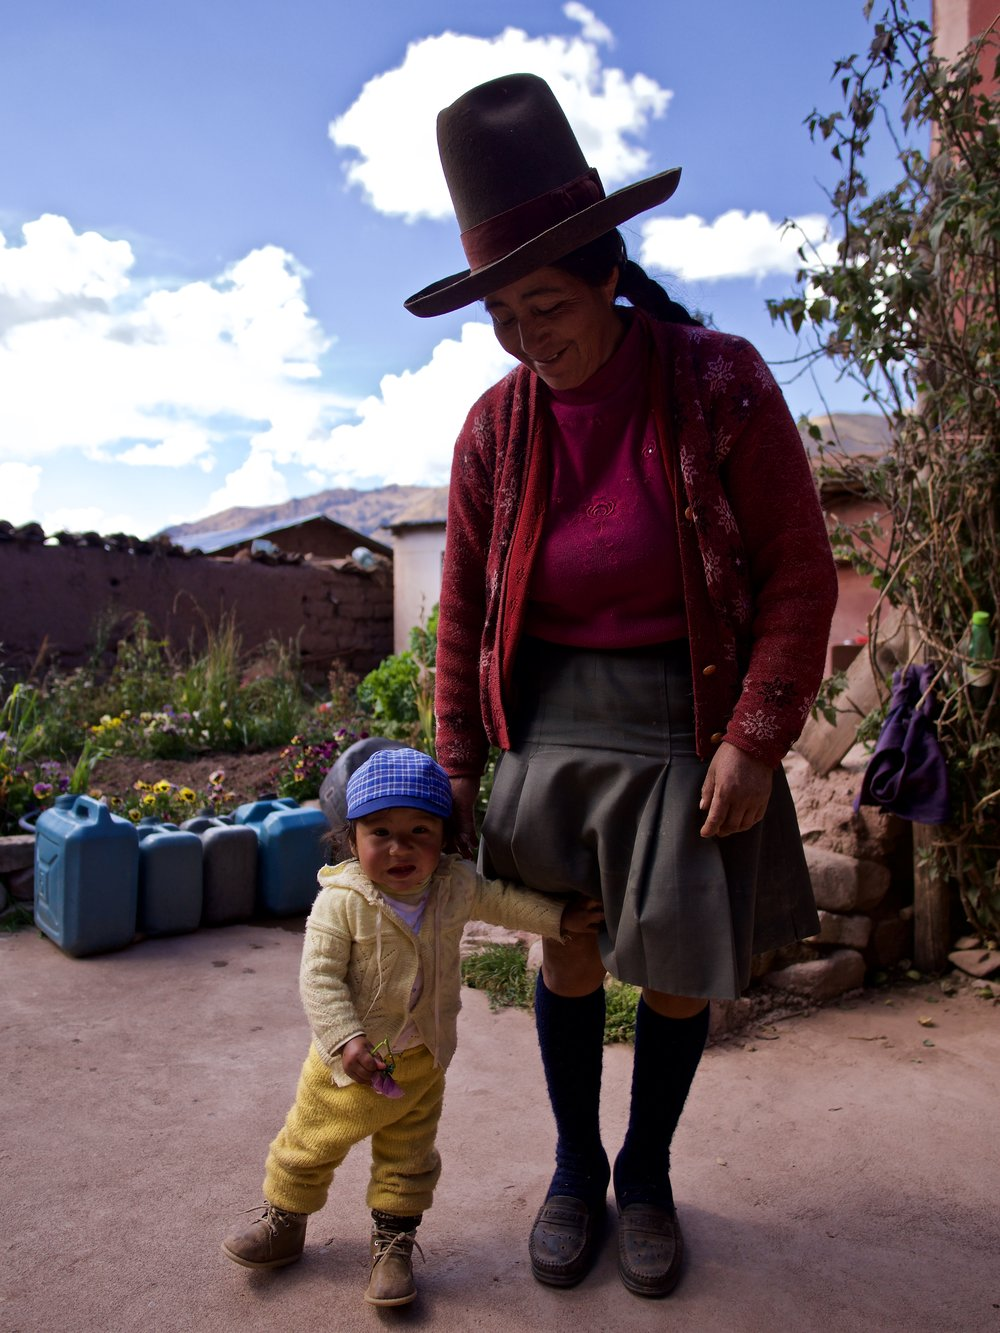 Rafaela Sallo - Volunteer Host, IVHQ PeruCrossing cultures in the Andean Mountains.